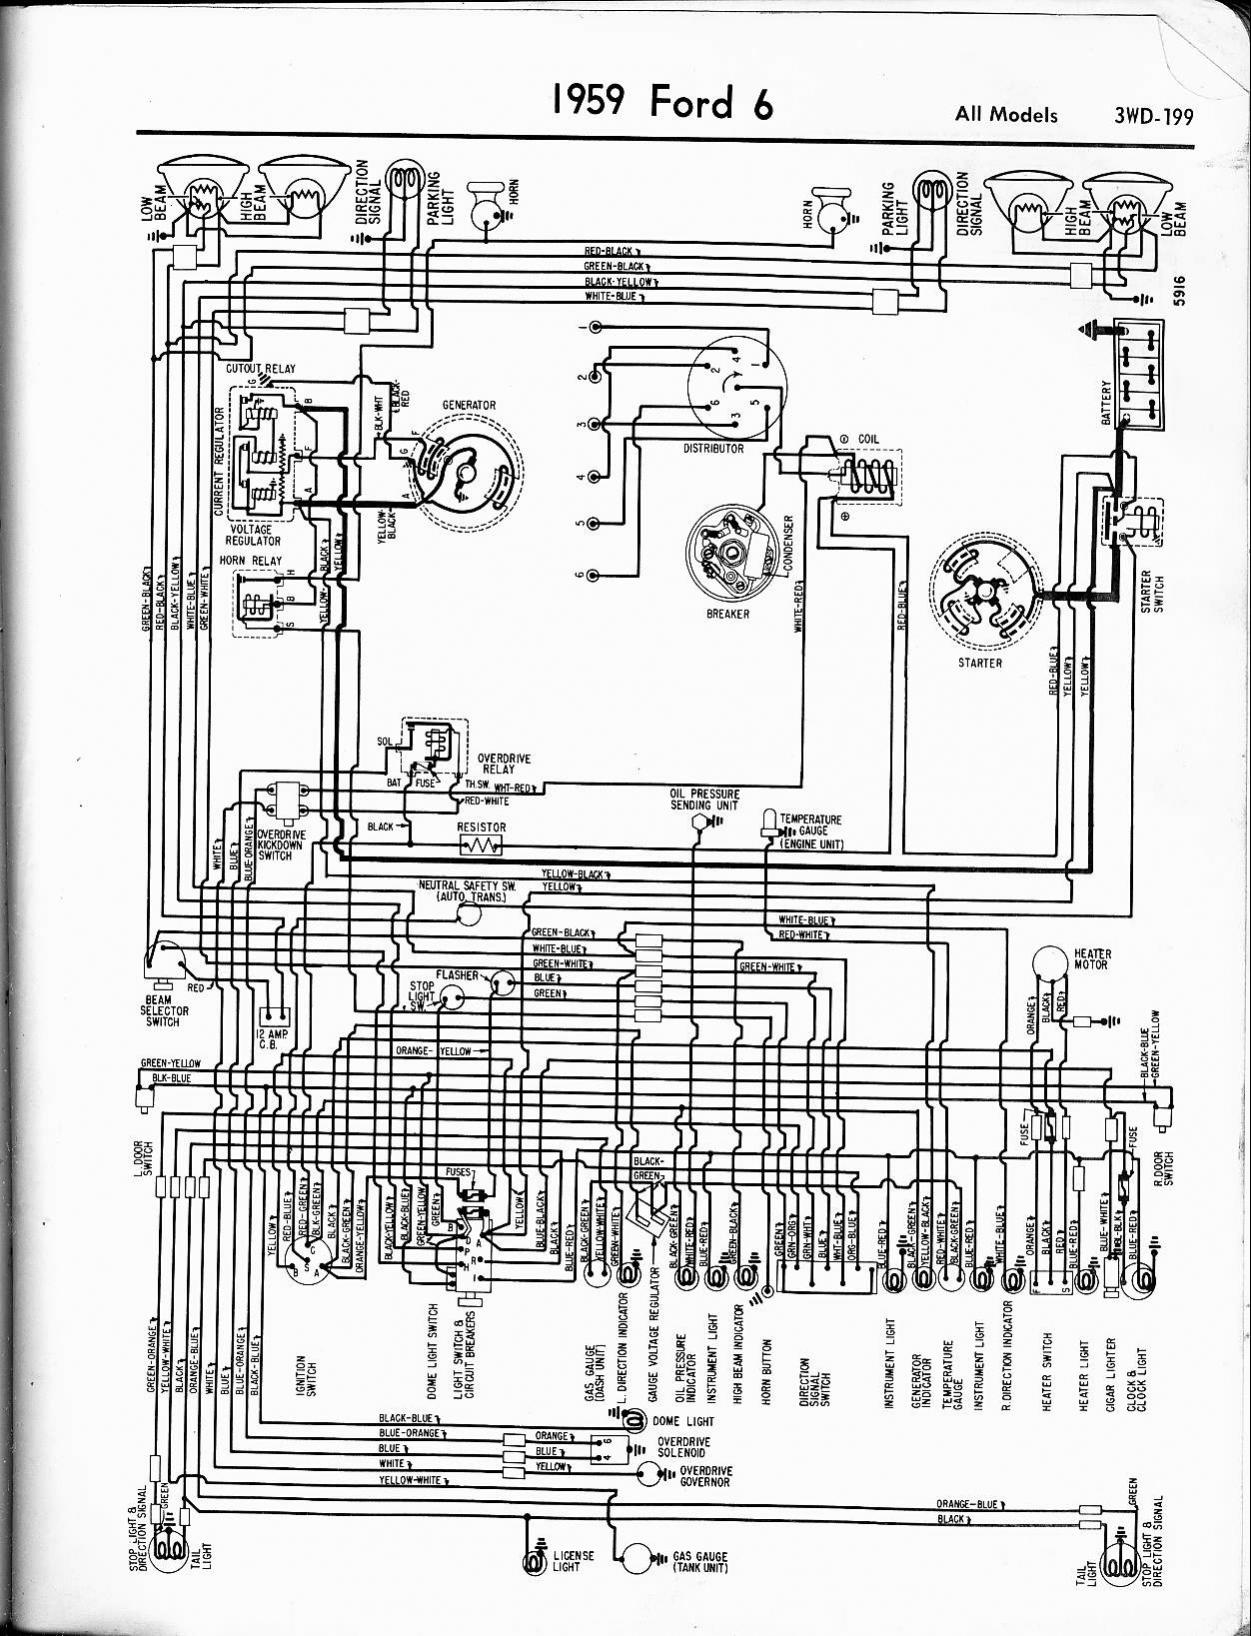 1960 ford f100 wiring harness wiring diagram schematic 1953 ford wiring diagram diagram